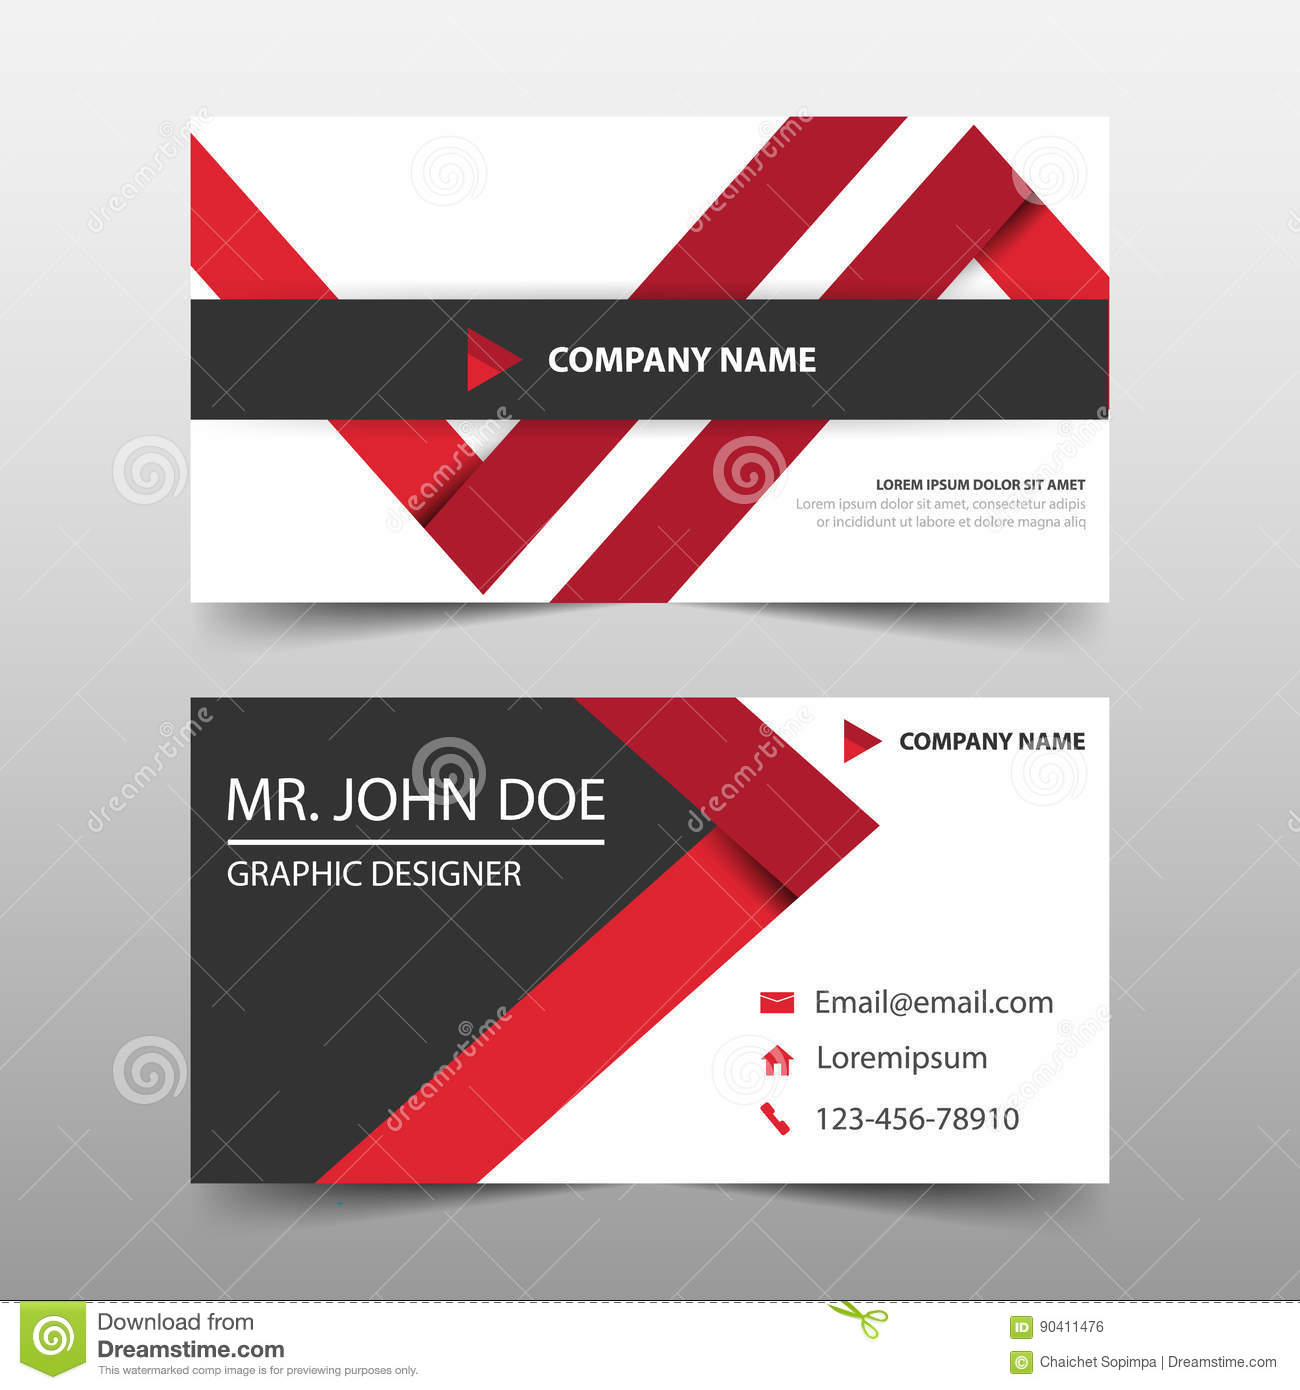 Red triangle corporate business card name card template horizontal download red triangle corporate business card name card template horizontal simple clean layout design reheart Gallery